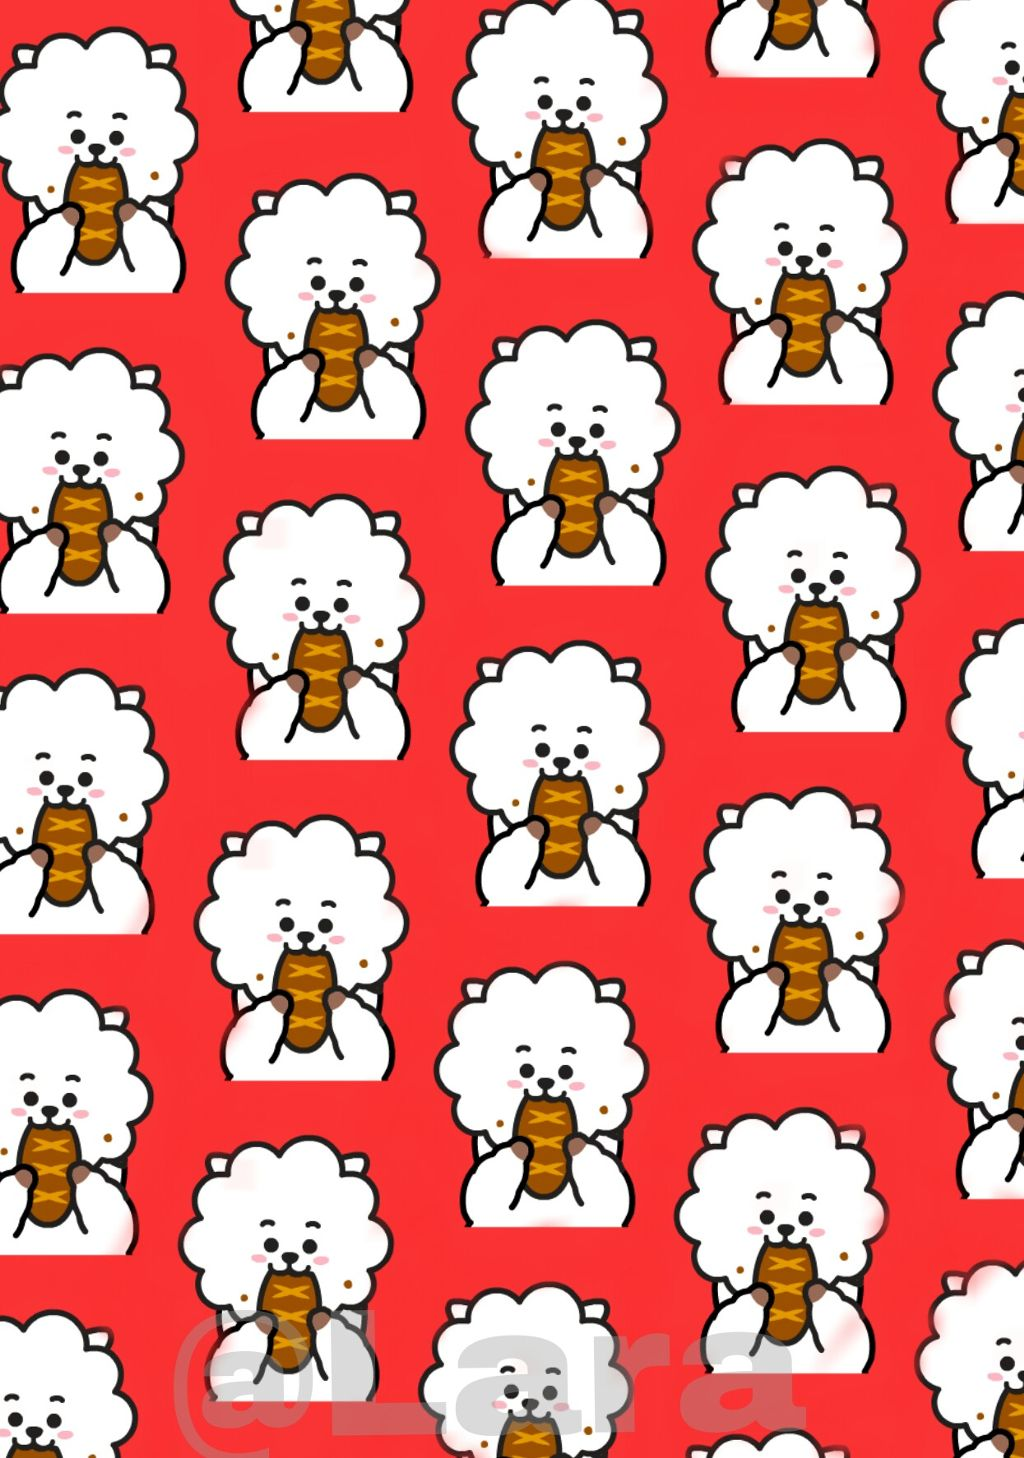 bts bt21 rj jin wallpaper freetoedit